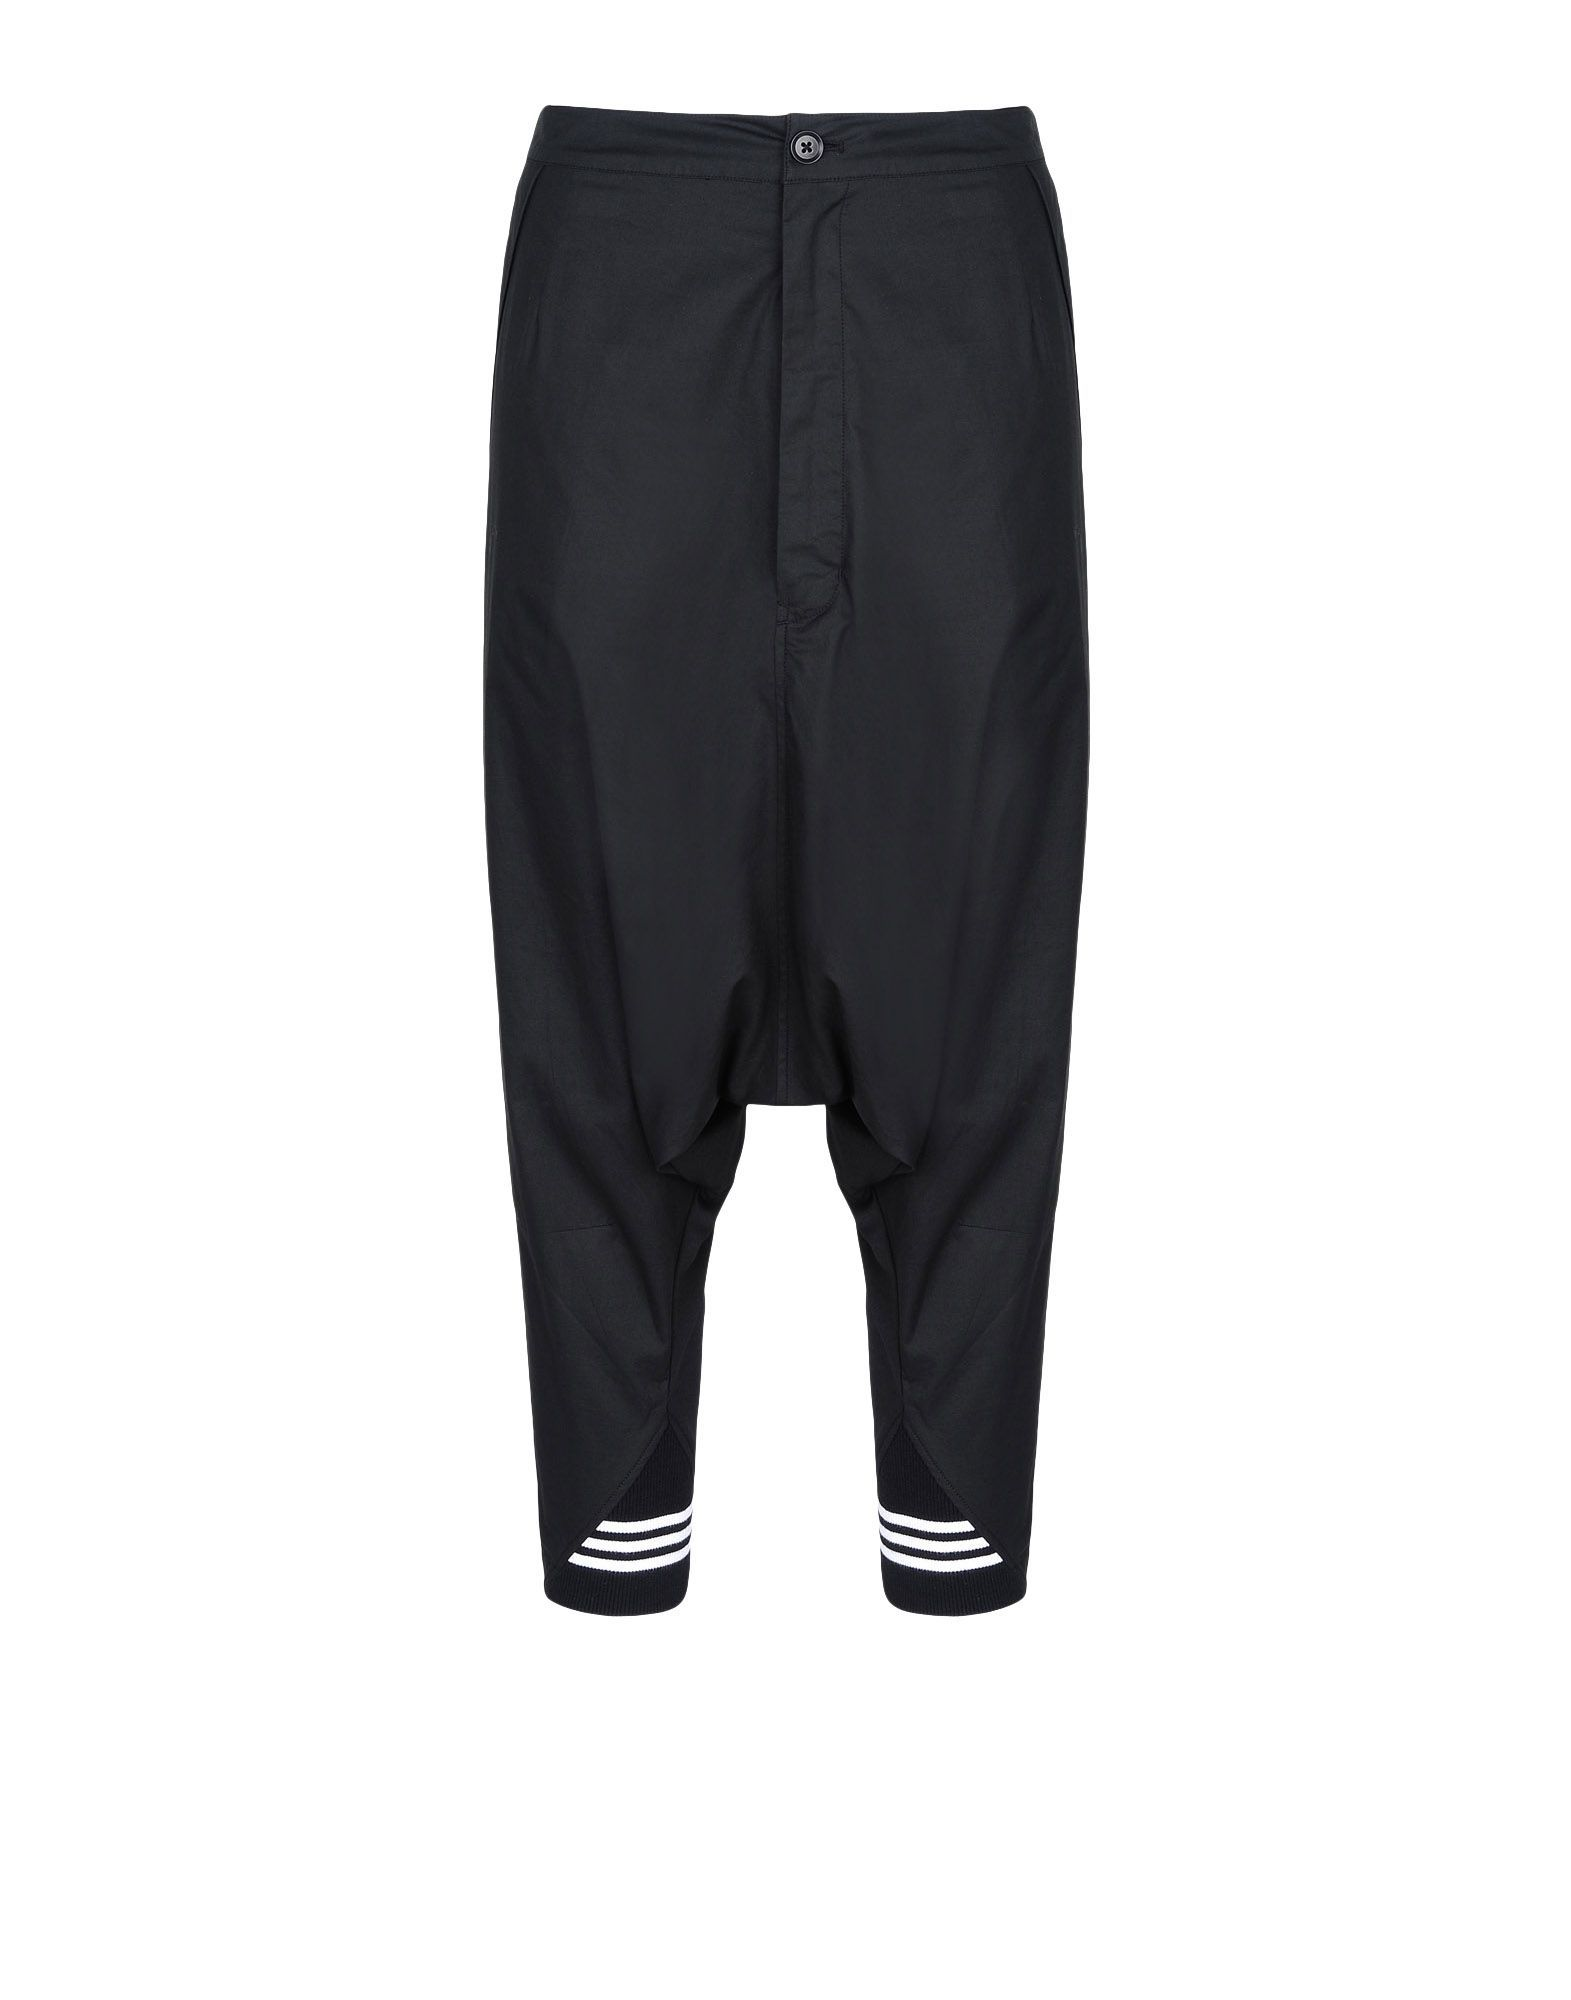 Check out the Y 3 ULTRALIGHT SAROUEL Casual Pants for Women and order today  on the official Adidas online store.